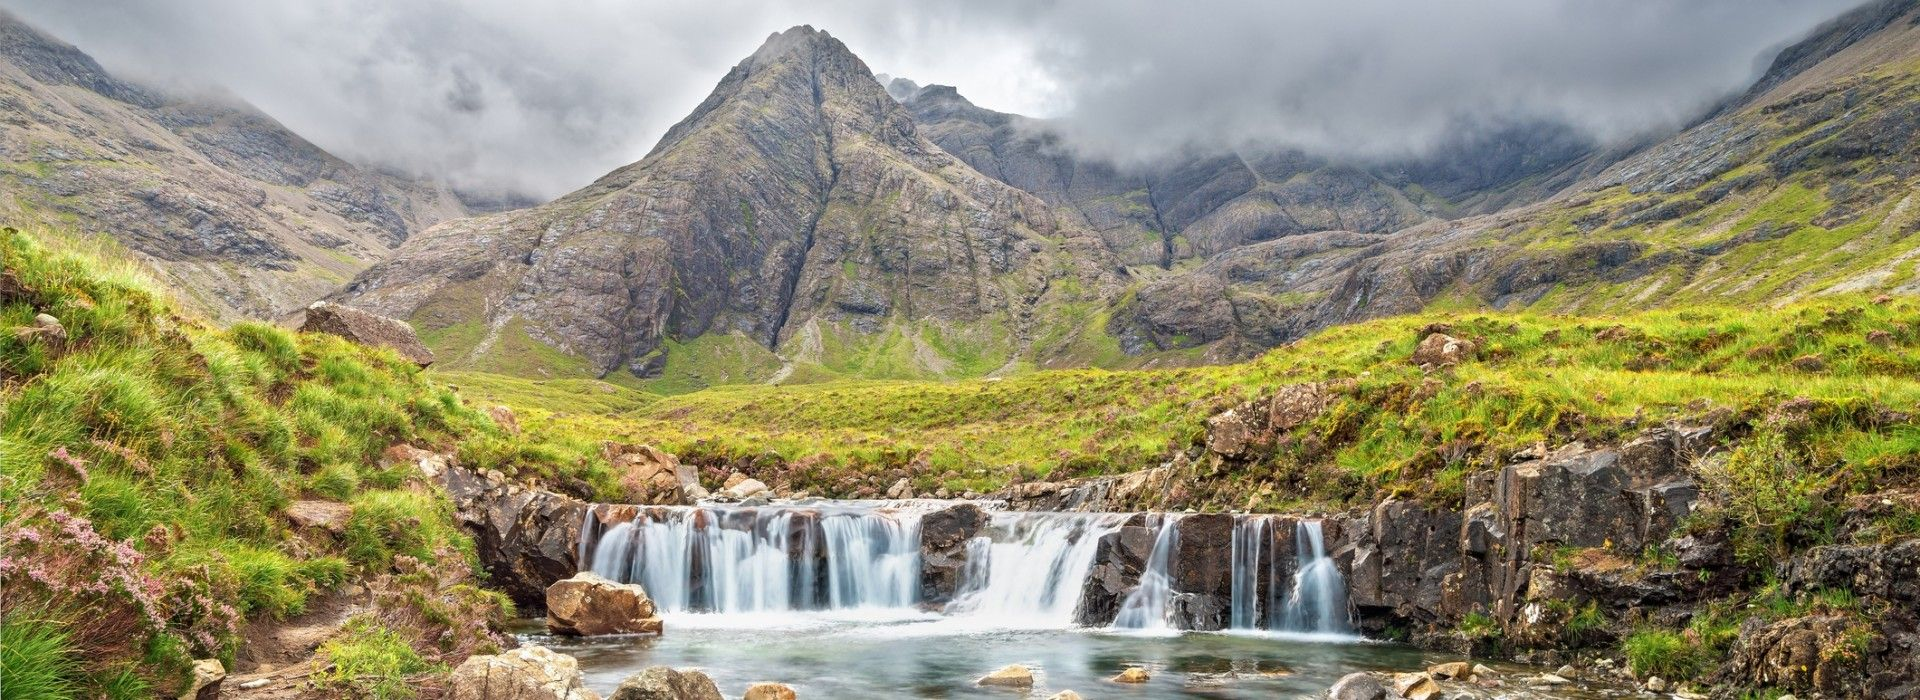 Sightseeing, attractions, culture and history Tours in Scotland